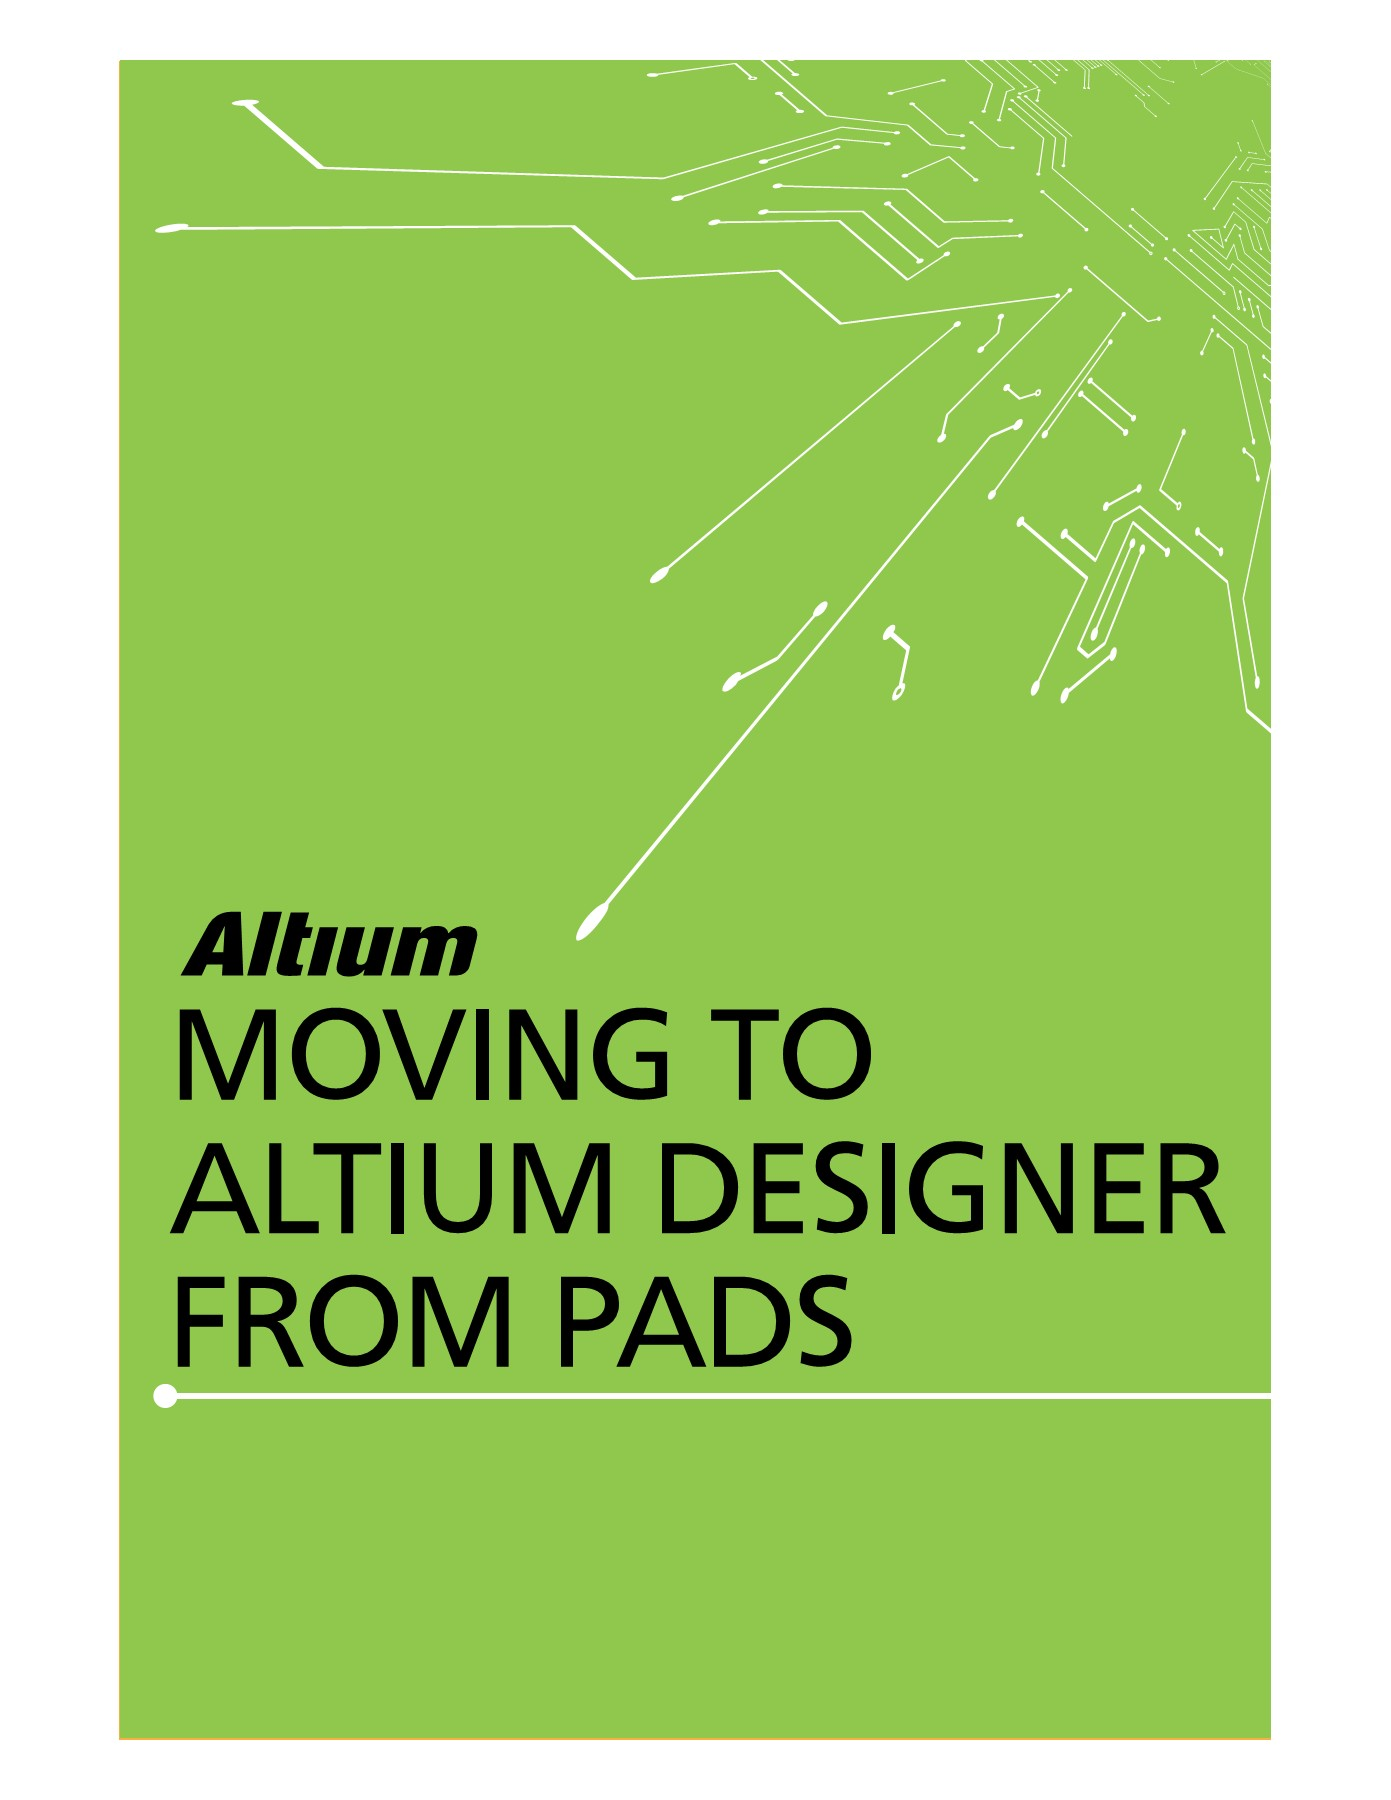 Moving to Altium Designer from PADS Pages 1 - 32 - Text Version